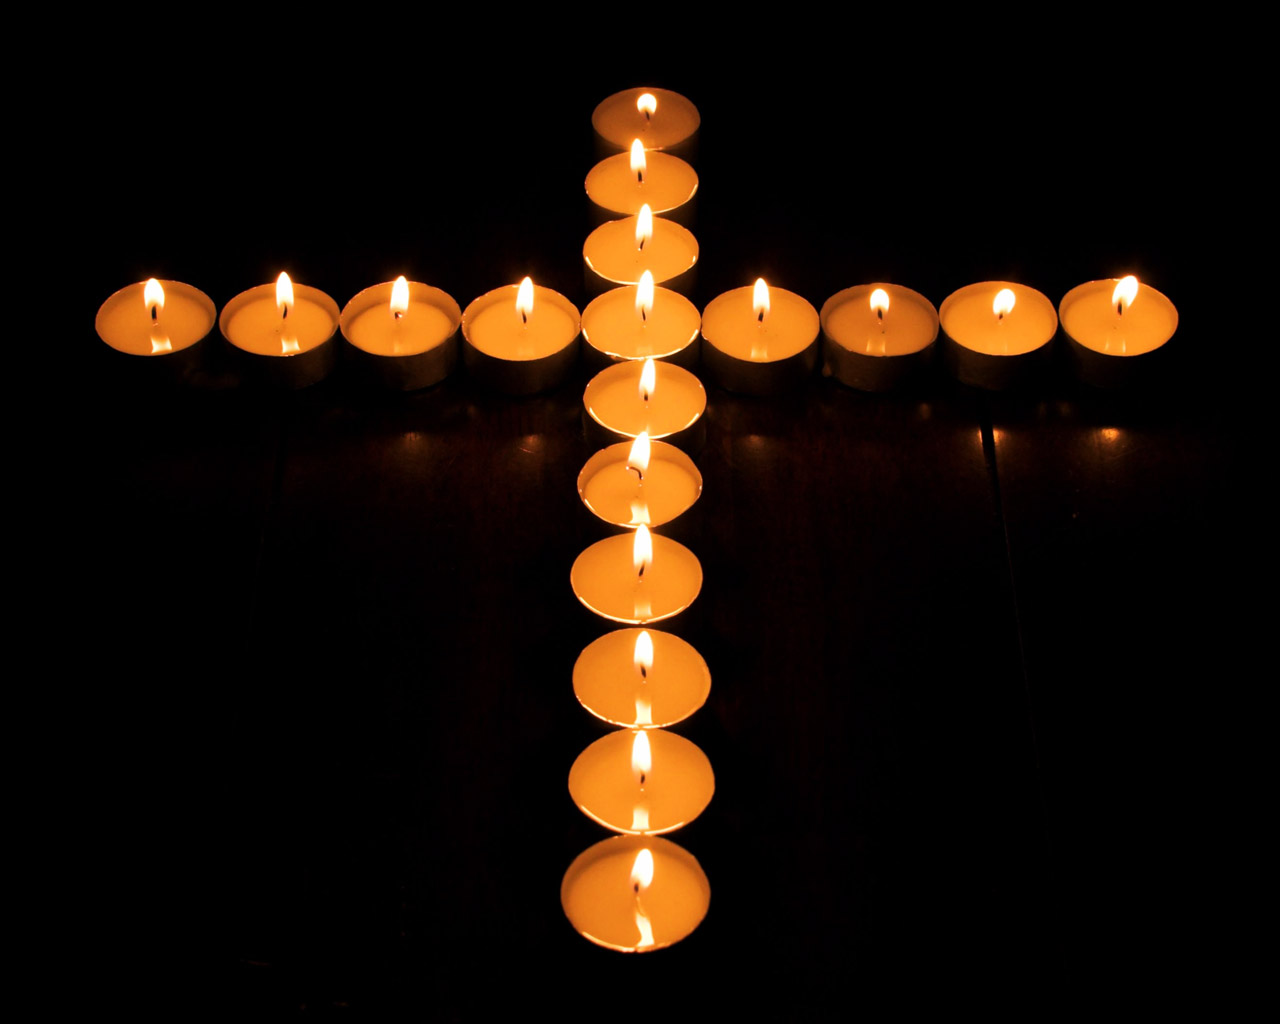 Candlelight Pictures, Candles at Night 1028x1024 NO.35 Wallpaper